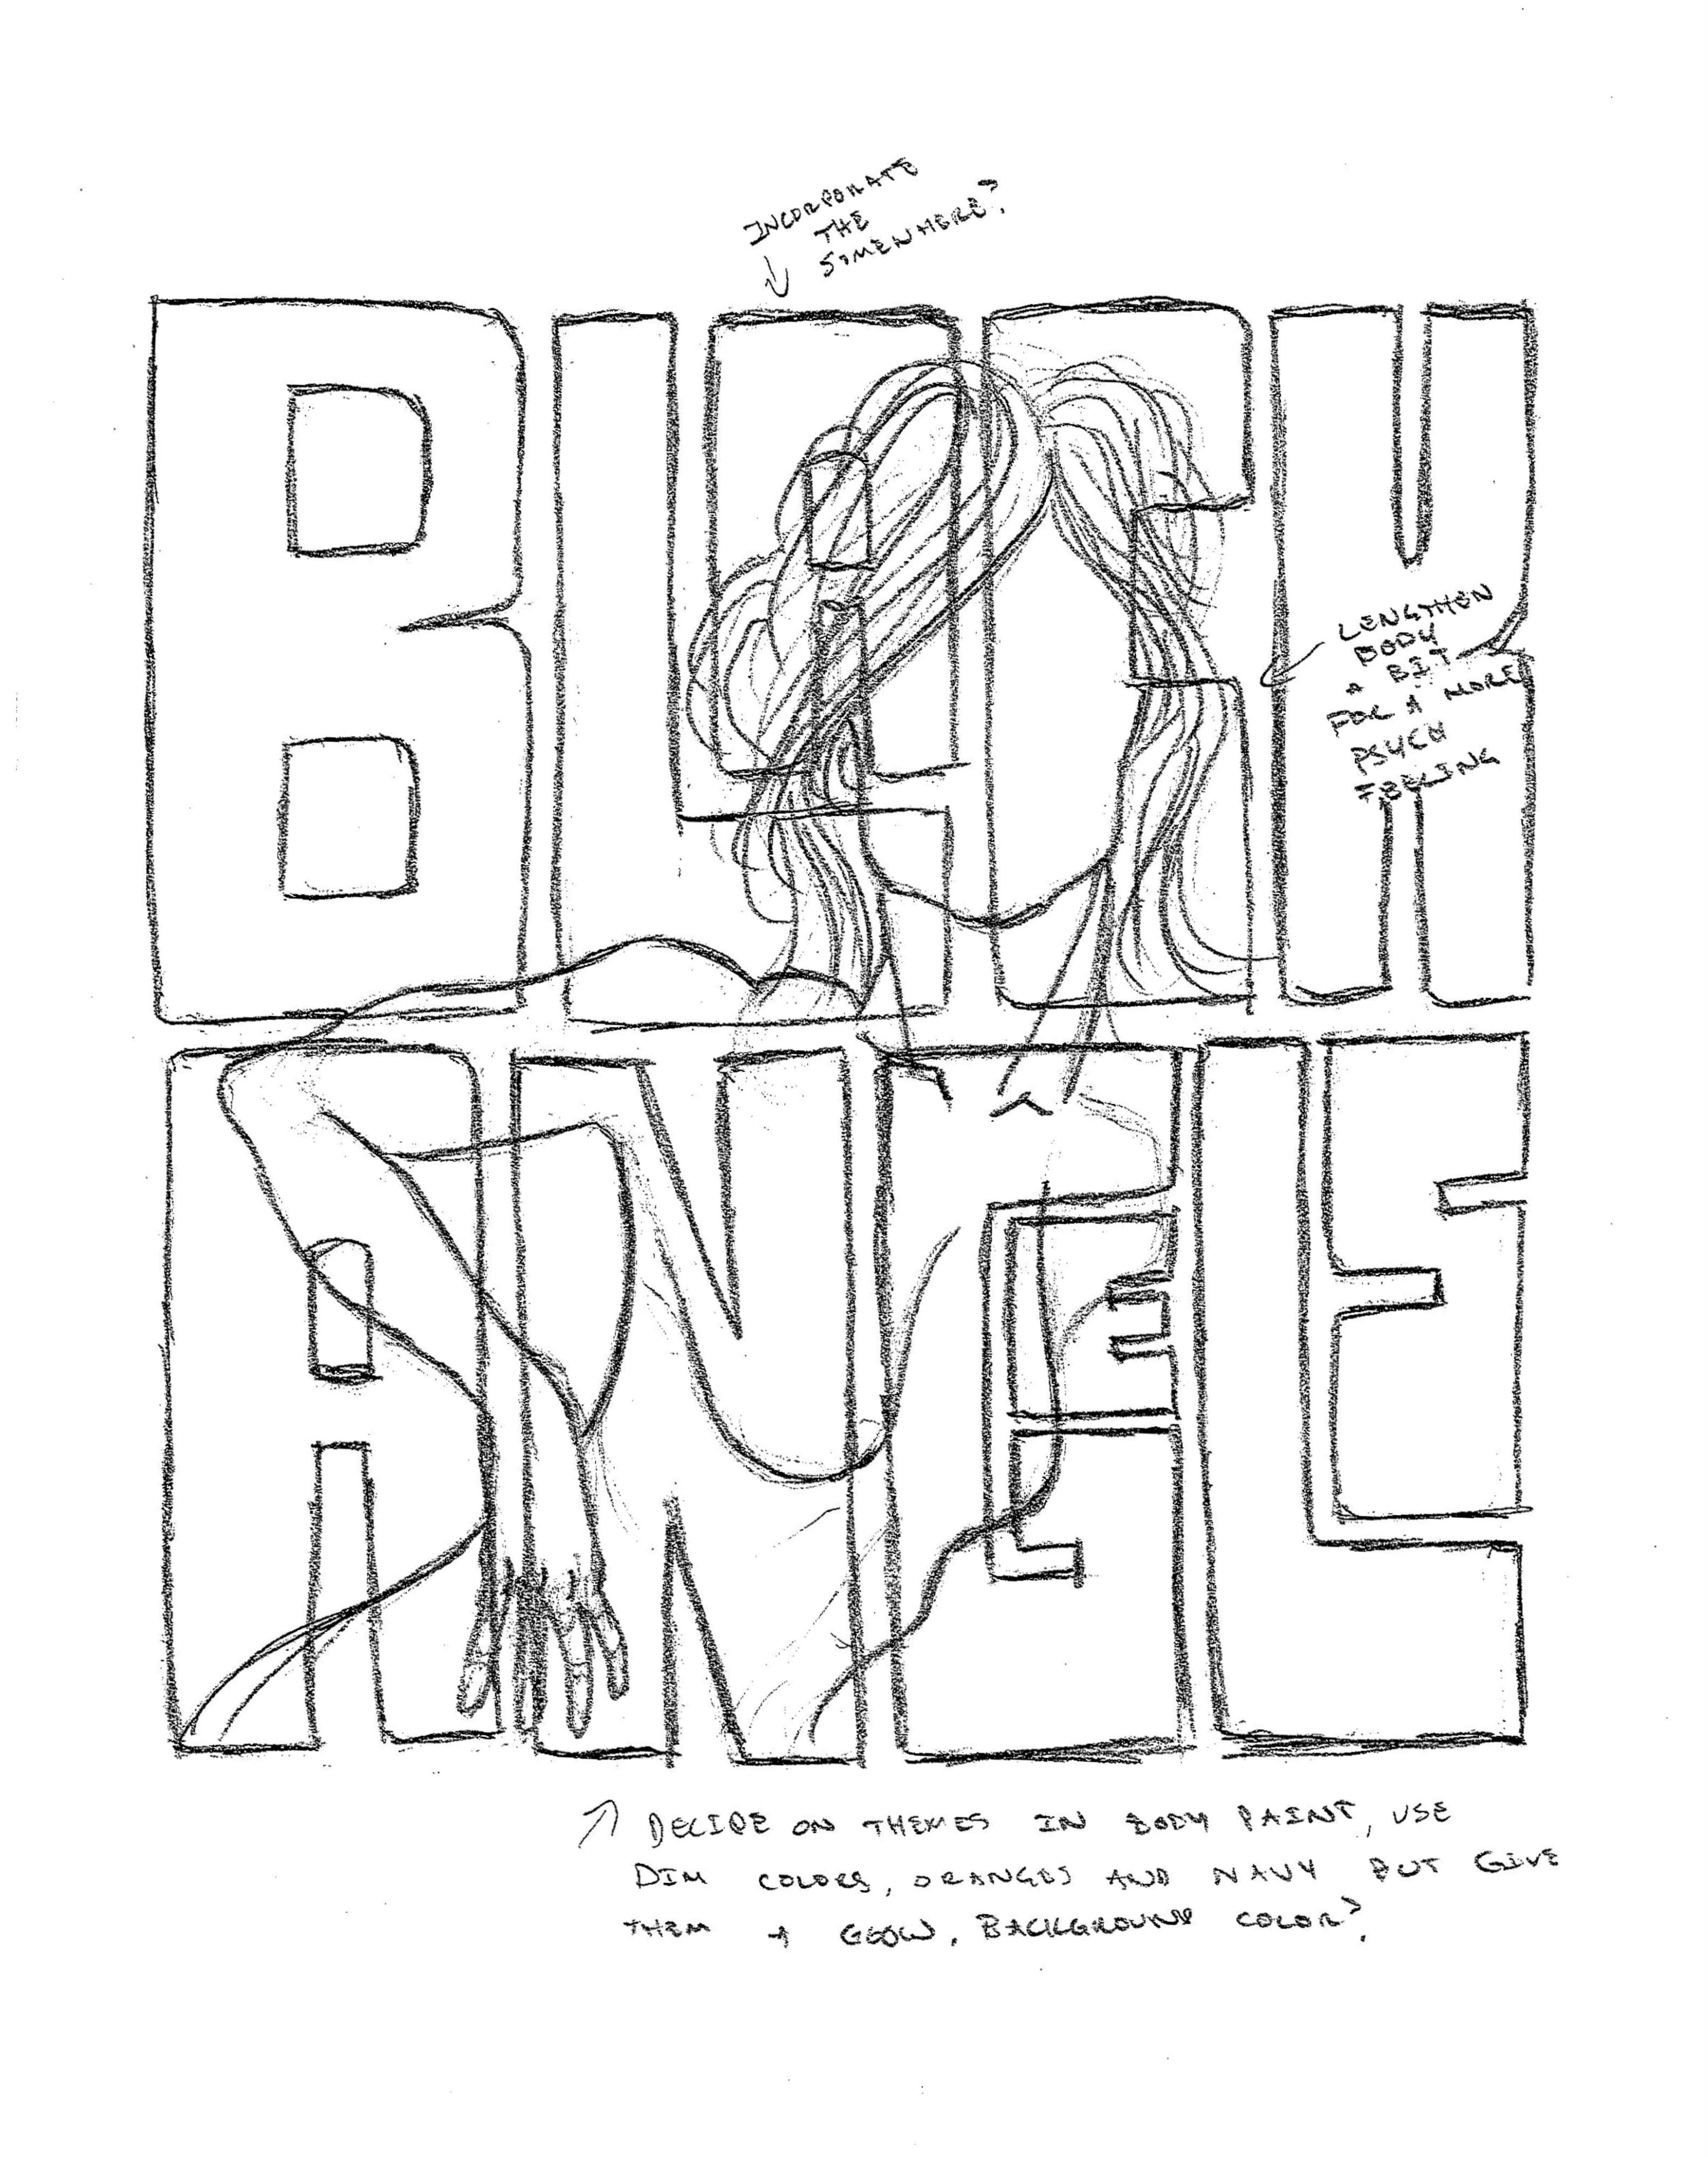 The Black Angels NYC Webster Hall Poster - image 7 - student project